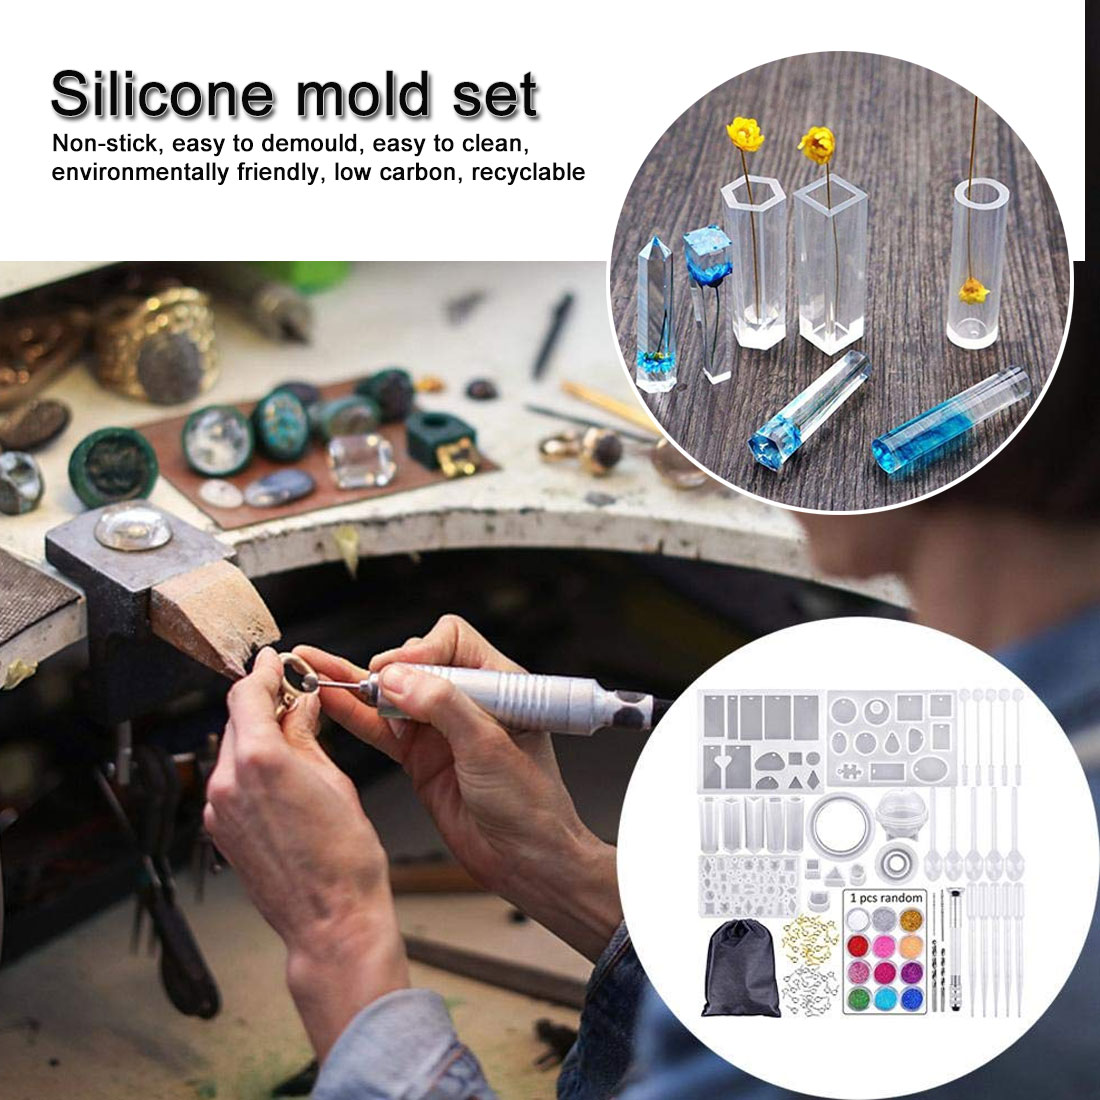 Mold suit Epoxy Resin Kit DIY Jewelry Making Tools Shiny Powder Cup Silicone Mold Necklace Pendant Ring Gifts Handmade Creative in Jewelry Tools Equipments from Jewelry Accessories